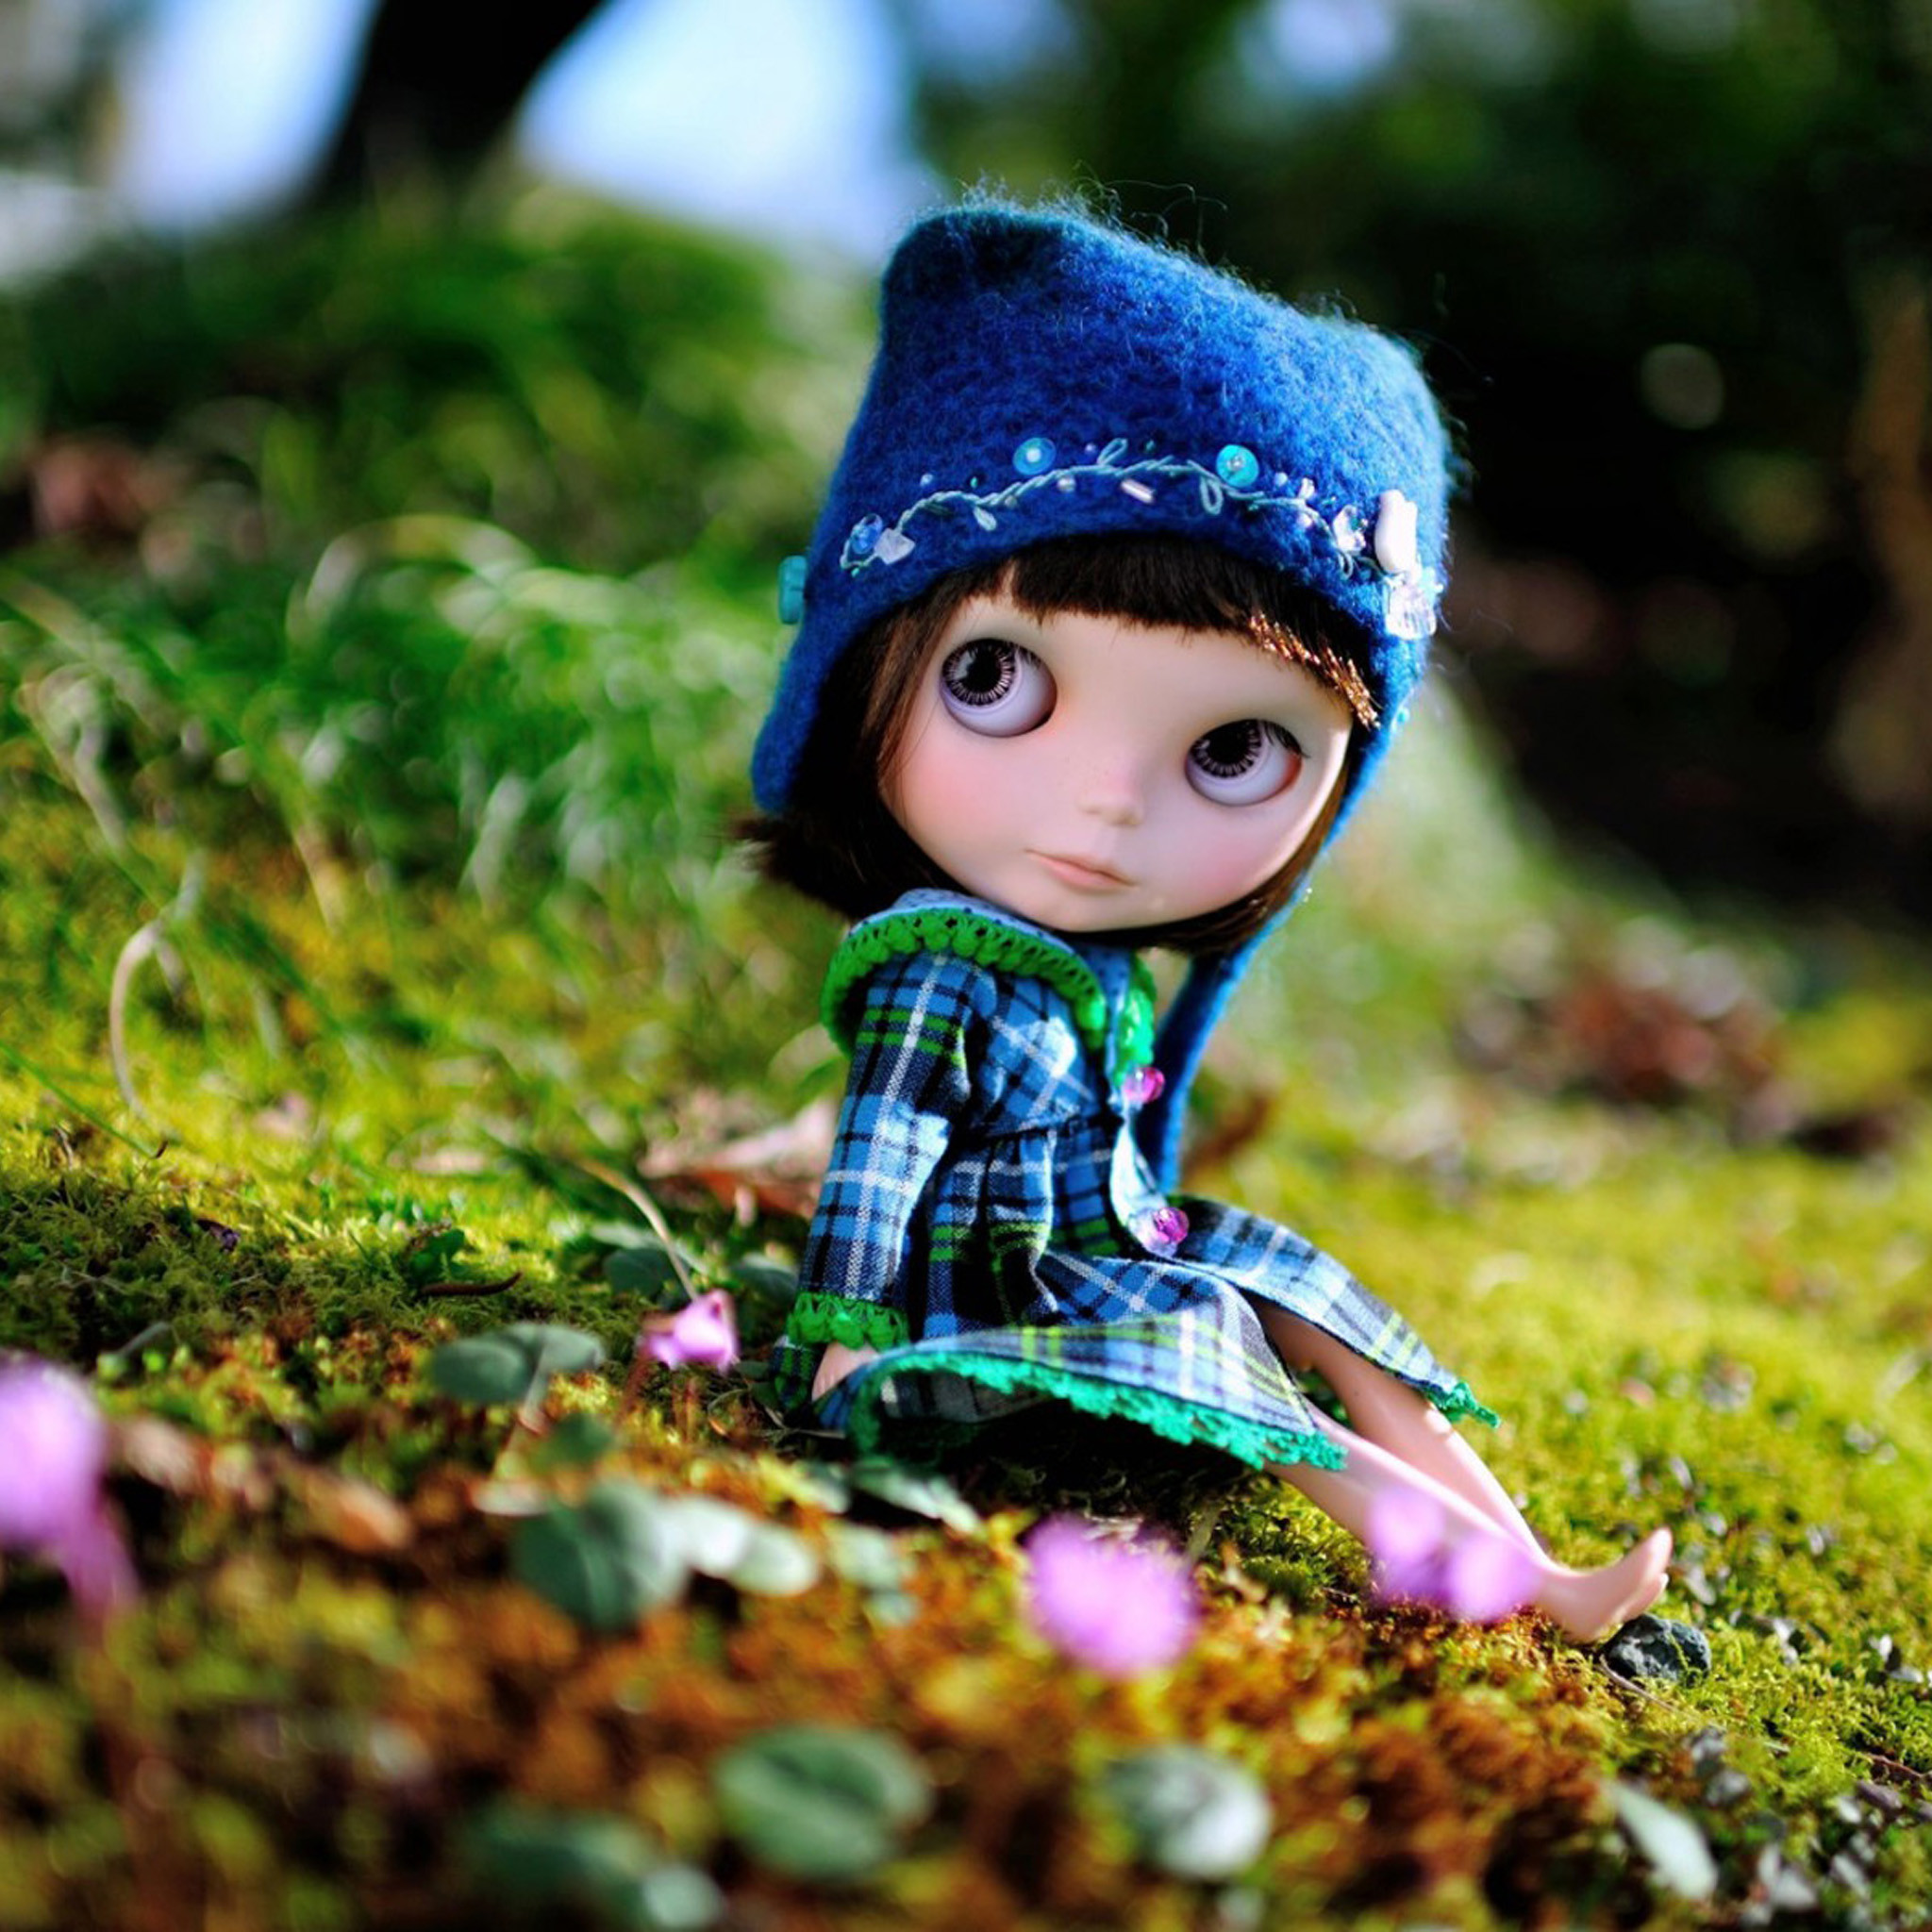 Cute Doll Live Wallpaper: 3D Girly Wallpaper (64+ Images